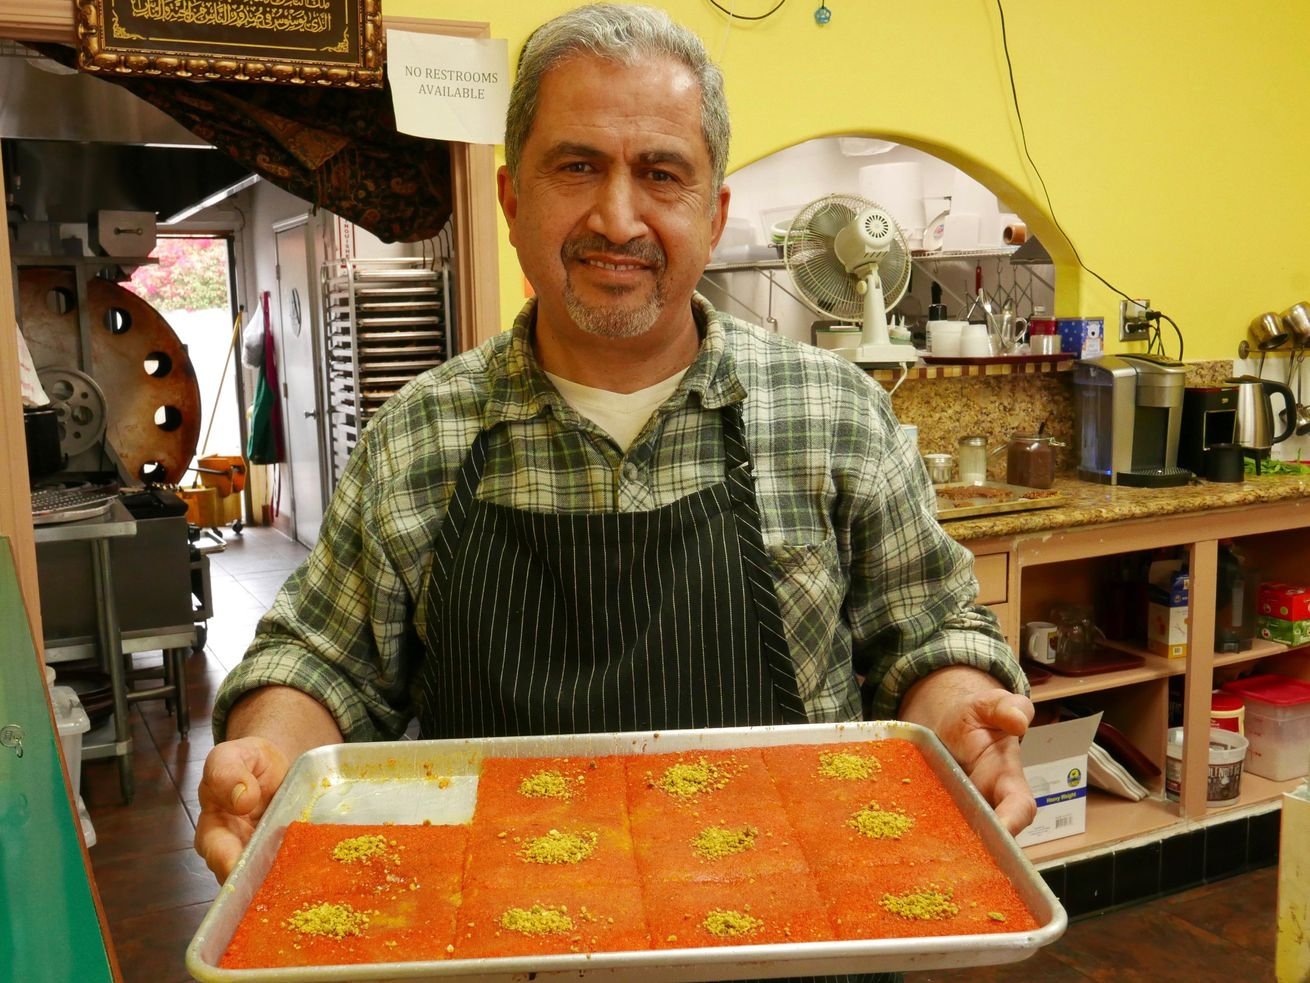 Nablus native Asem Abusir brings over 100 years of family know-how to Anaheim